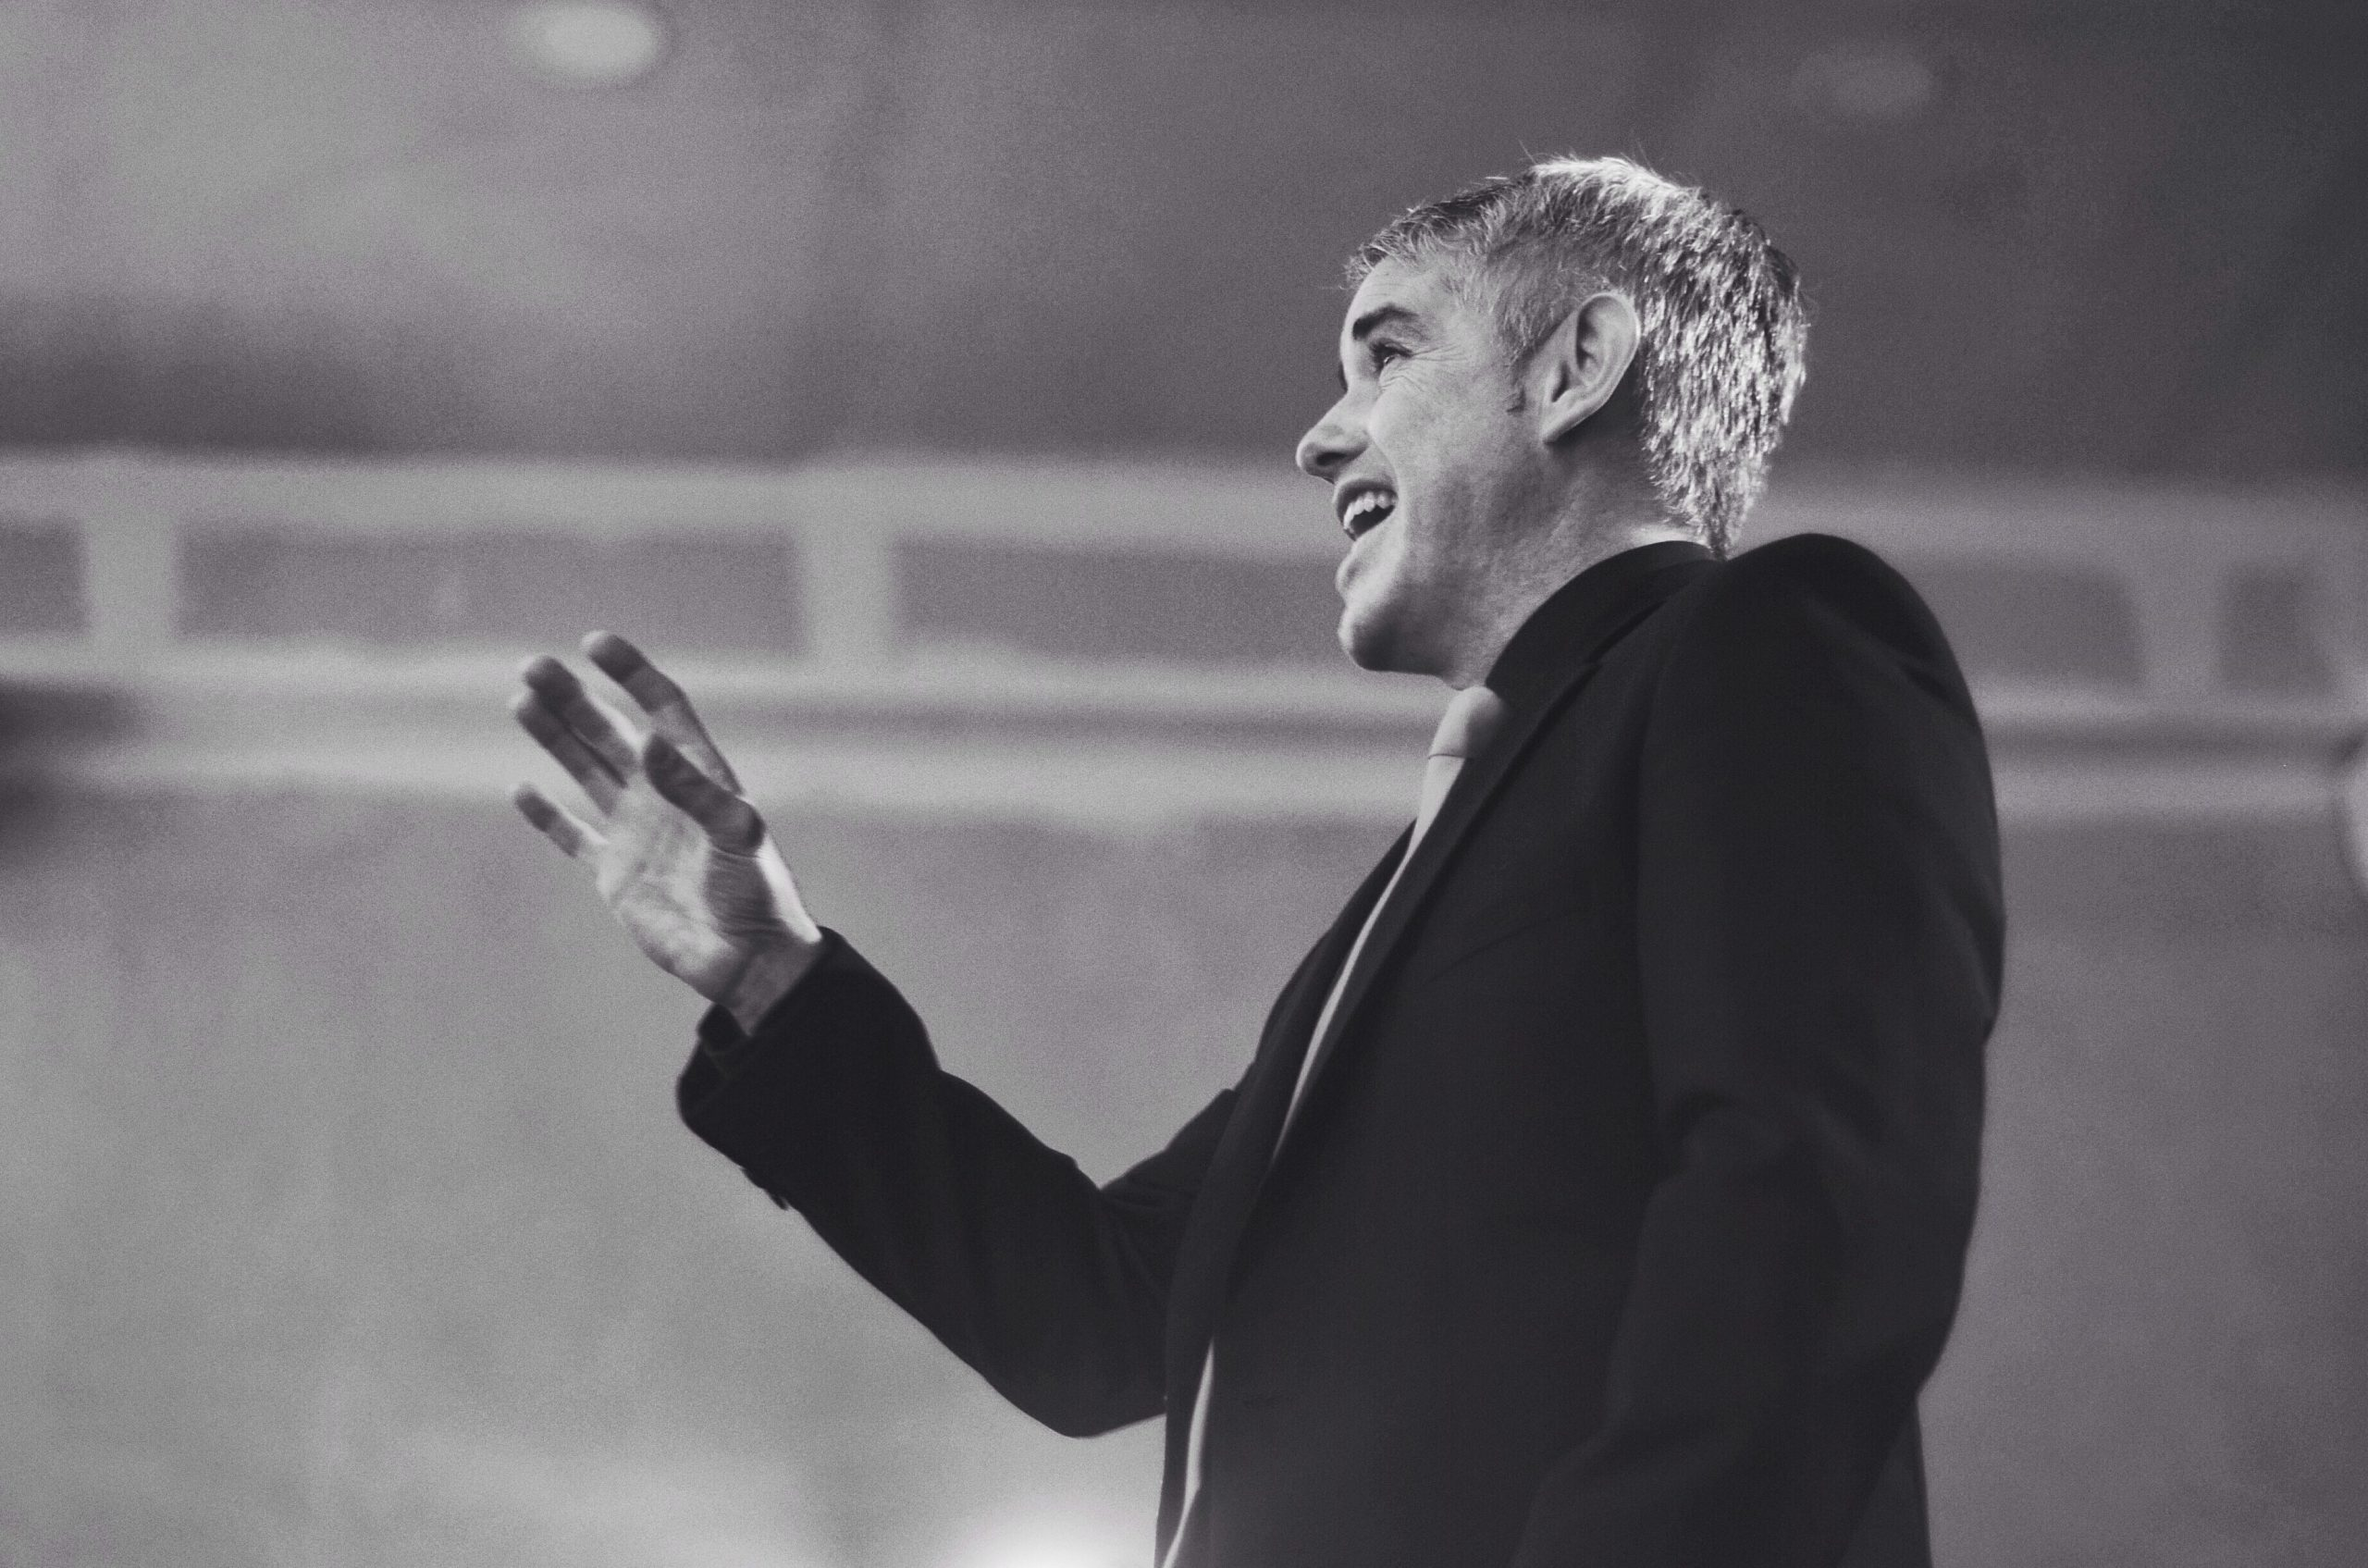 grayscale photography of man singing